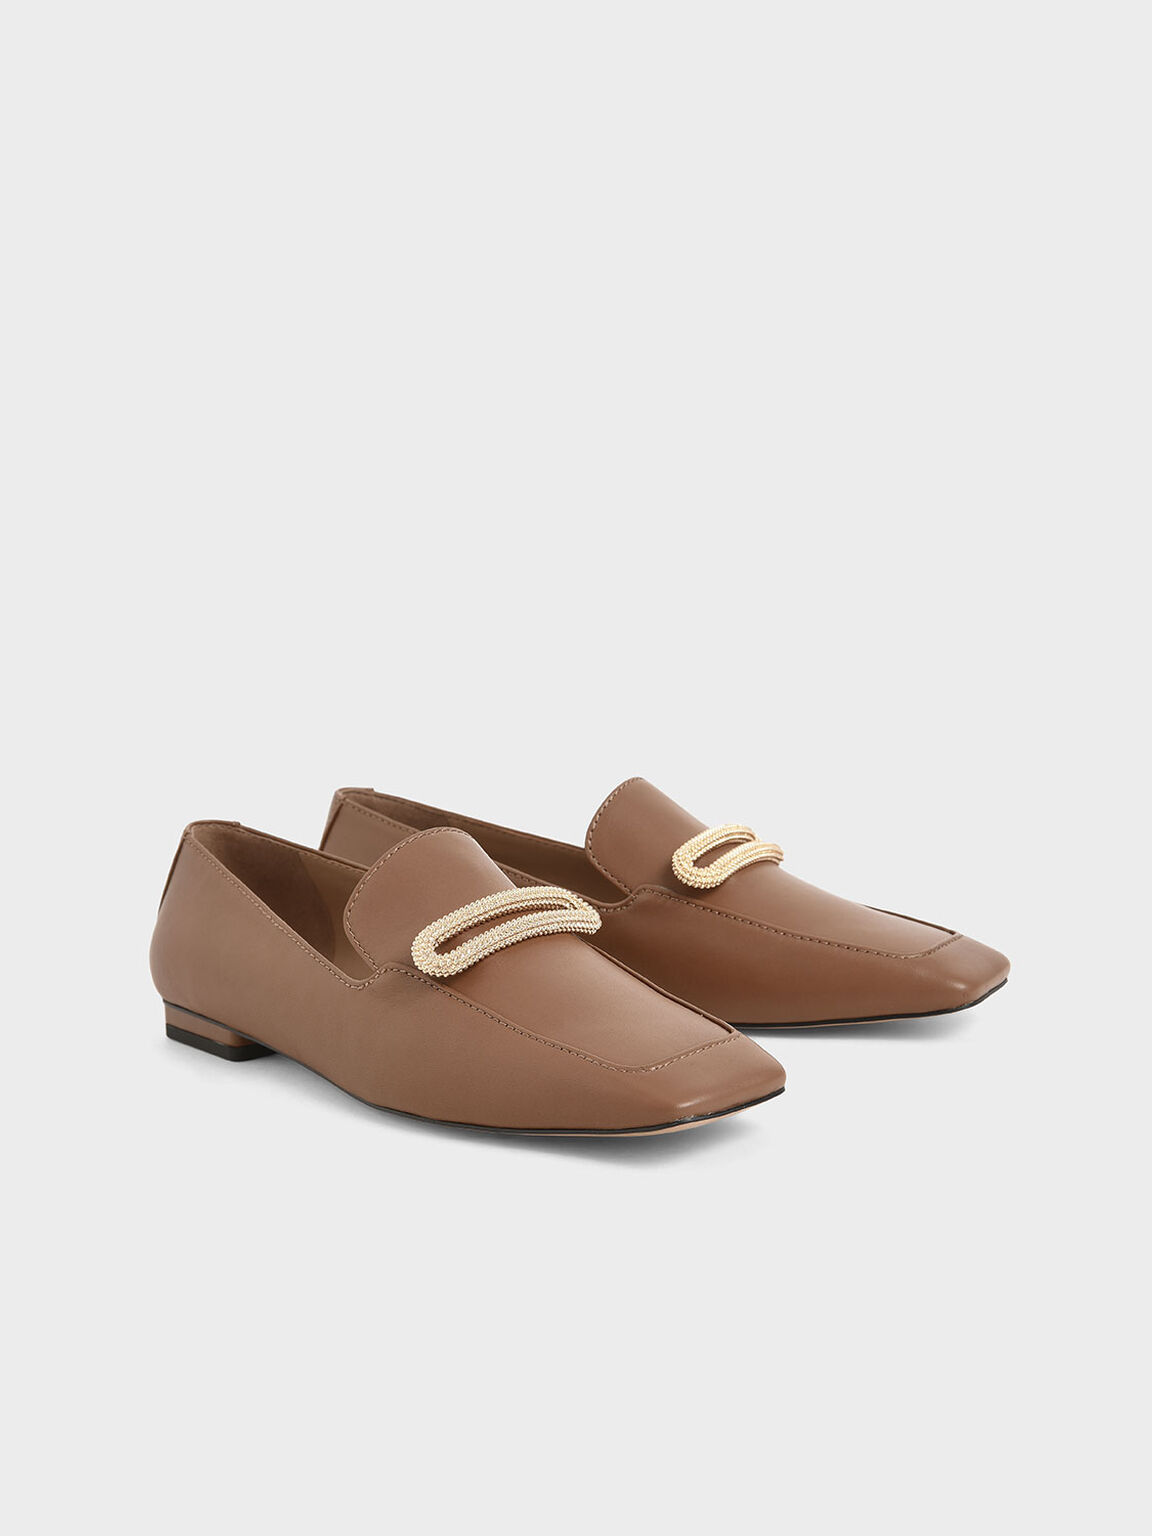 Leather Metallic Accent Loafers, Brown, hi-res